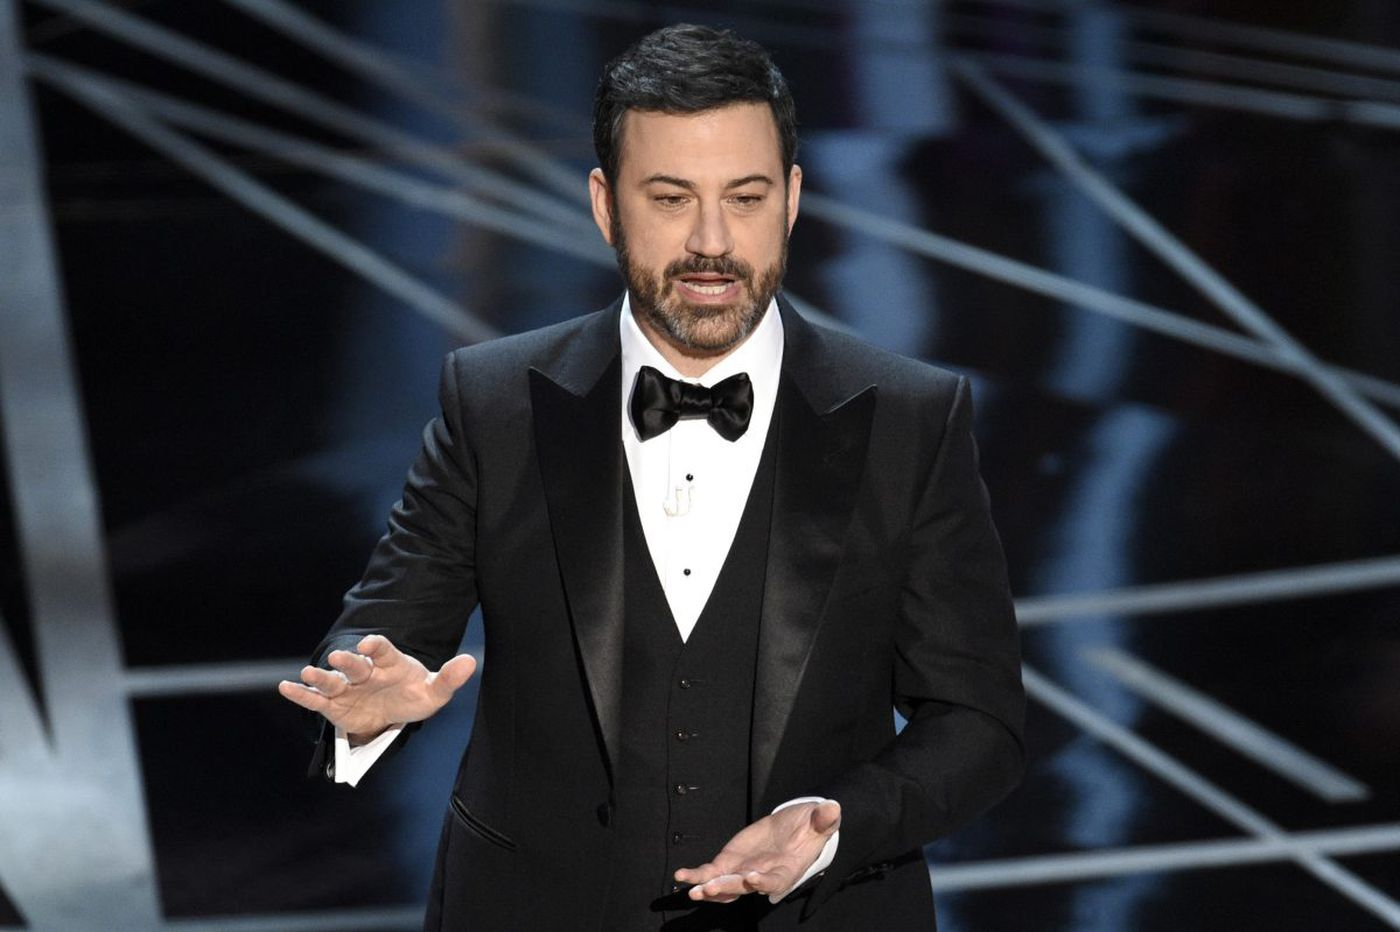 The new Jimmy Kimmel test: How to respond to mass shootings - Trudy Rubin